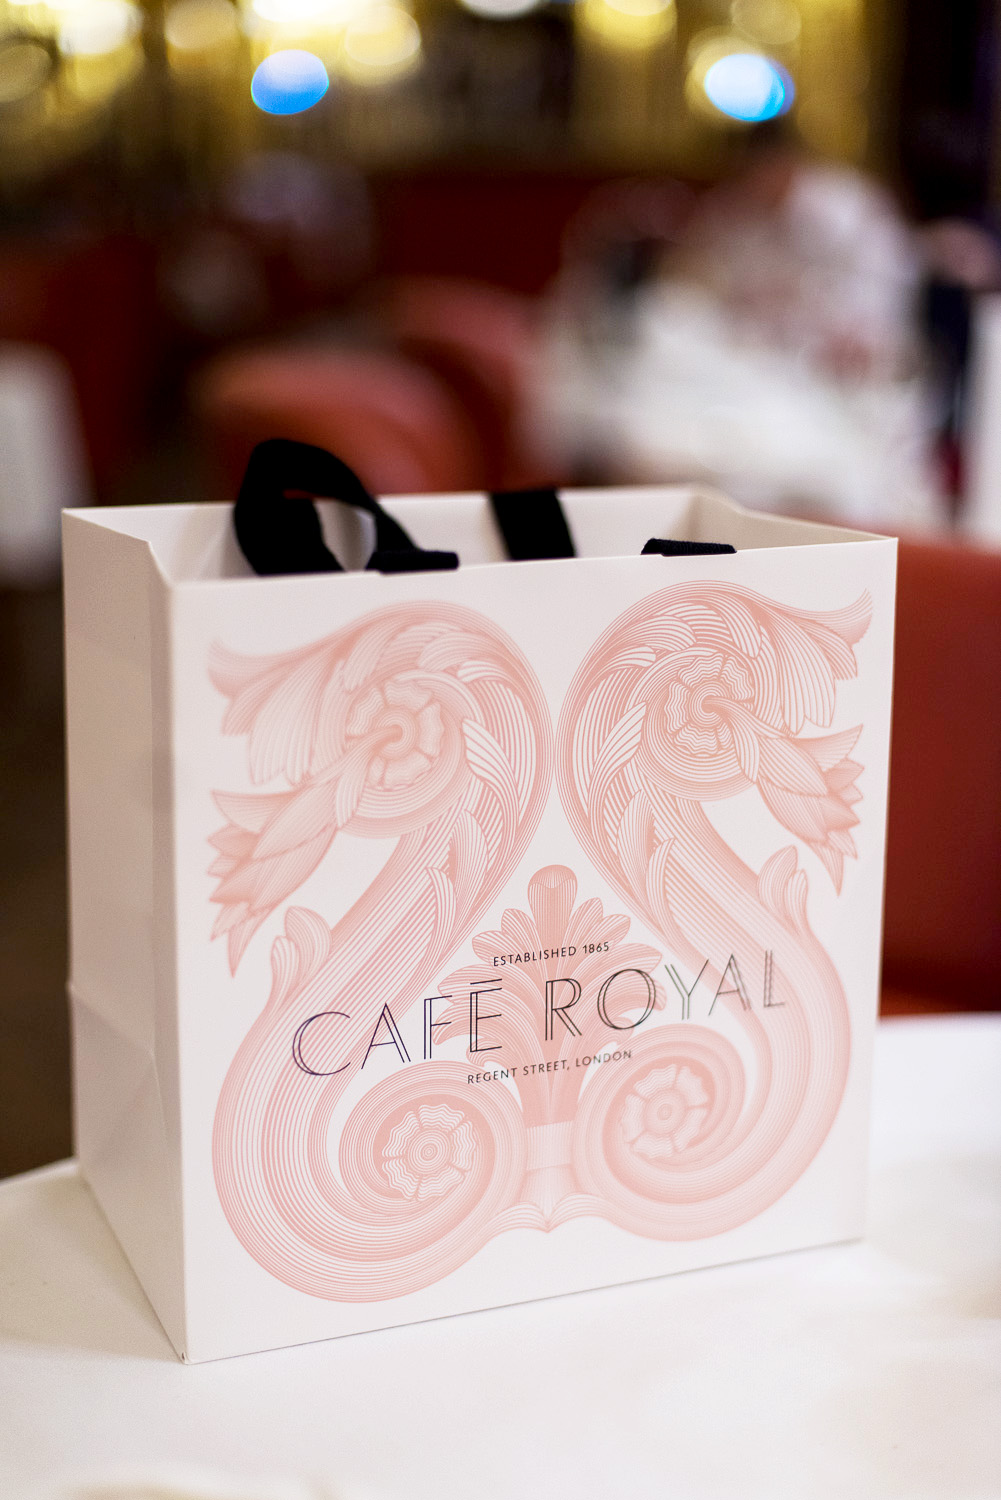 Afternoon-Tea-Hotel-Cafe-Royal-London-9